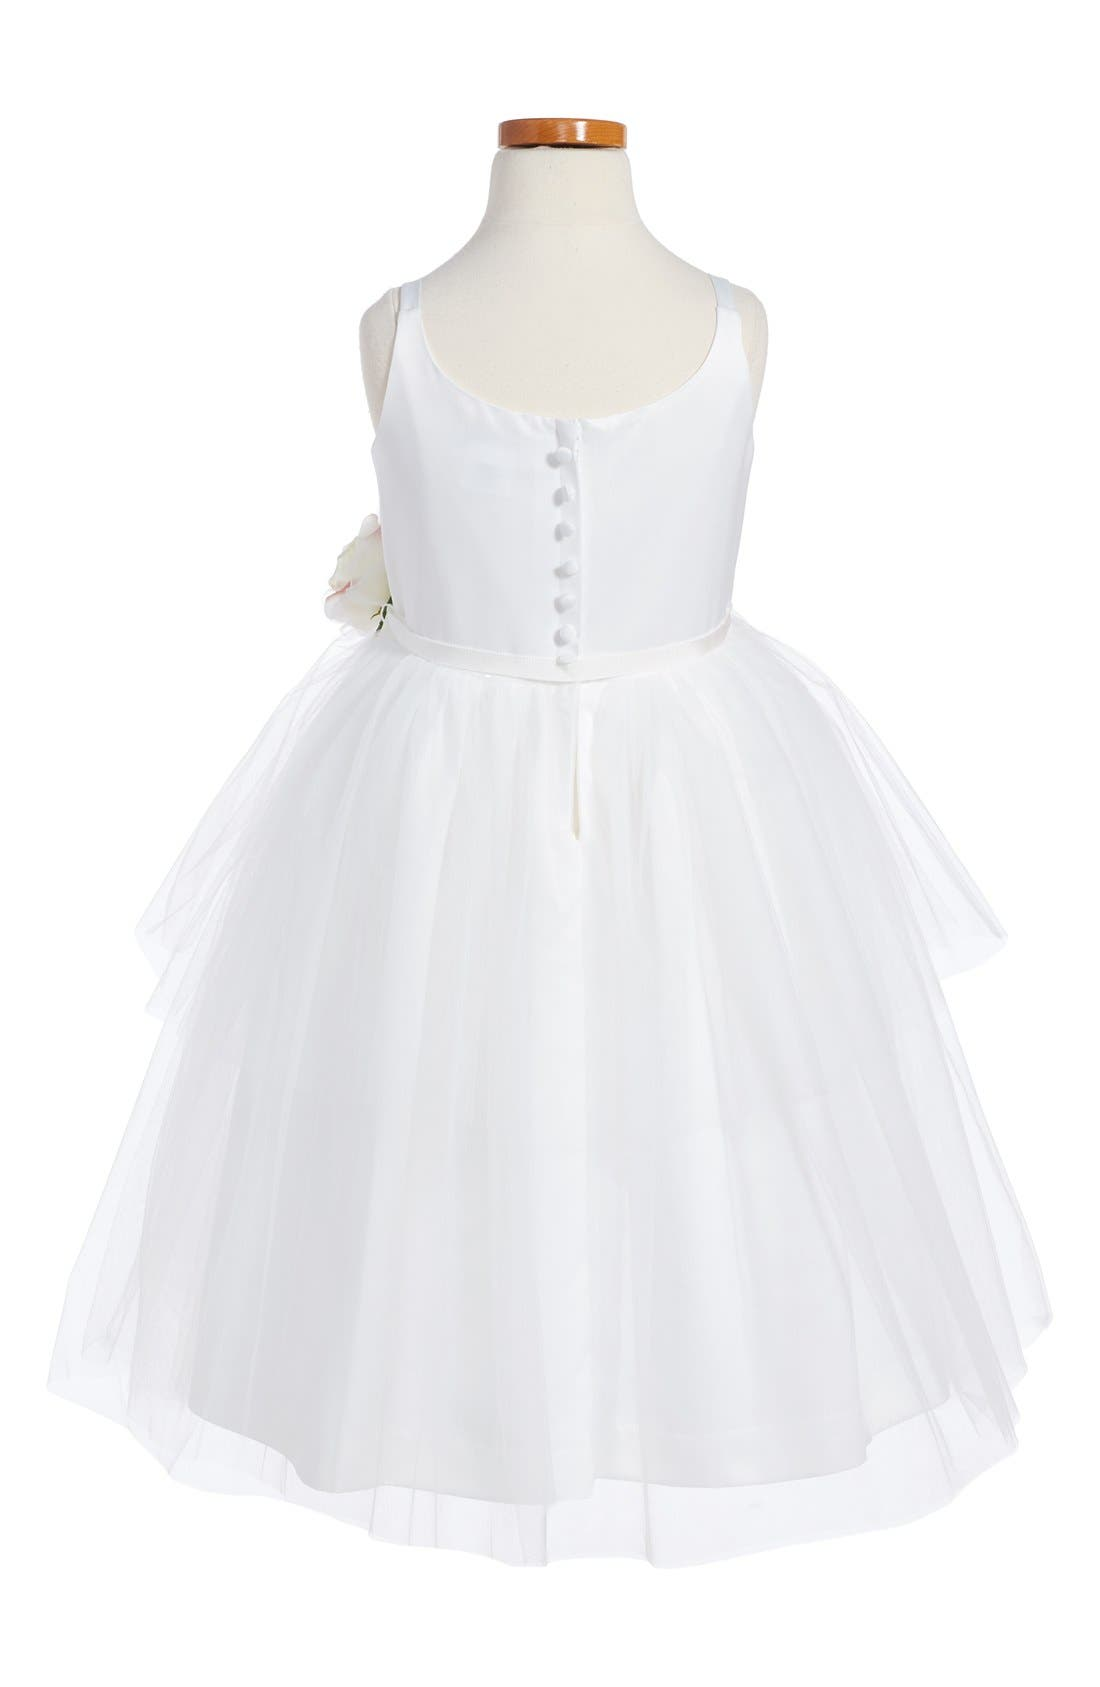 Tulle Ballerina Dress,                             Alternate thumbnail 5, color,                             IVORY